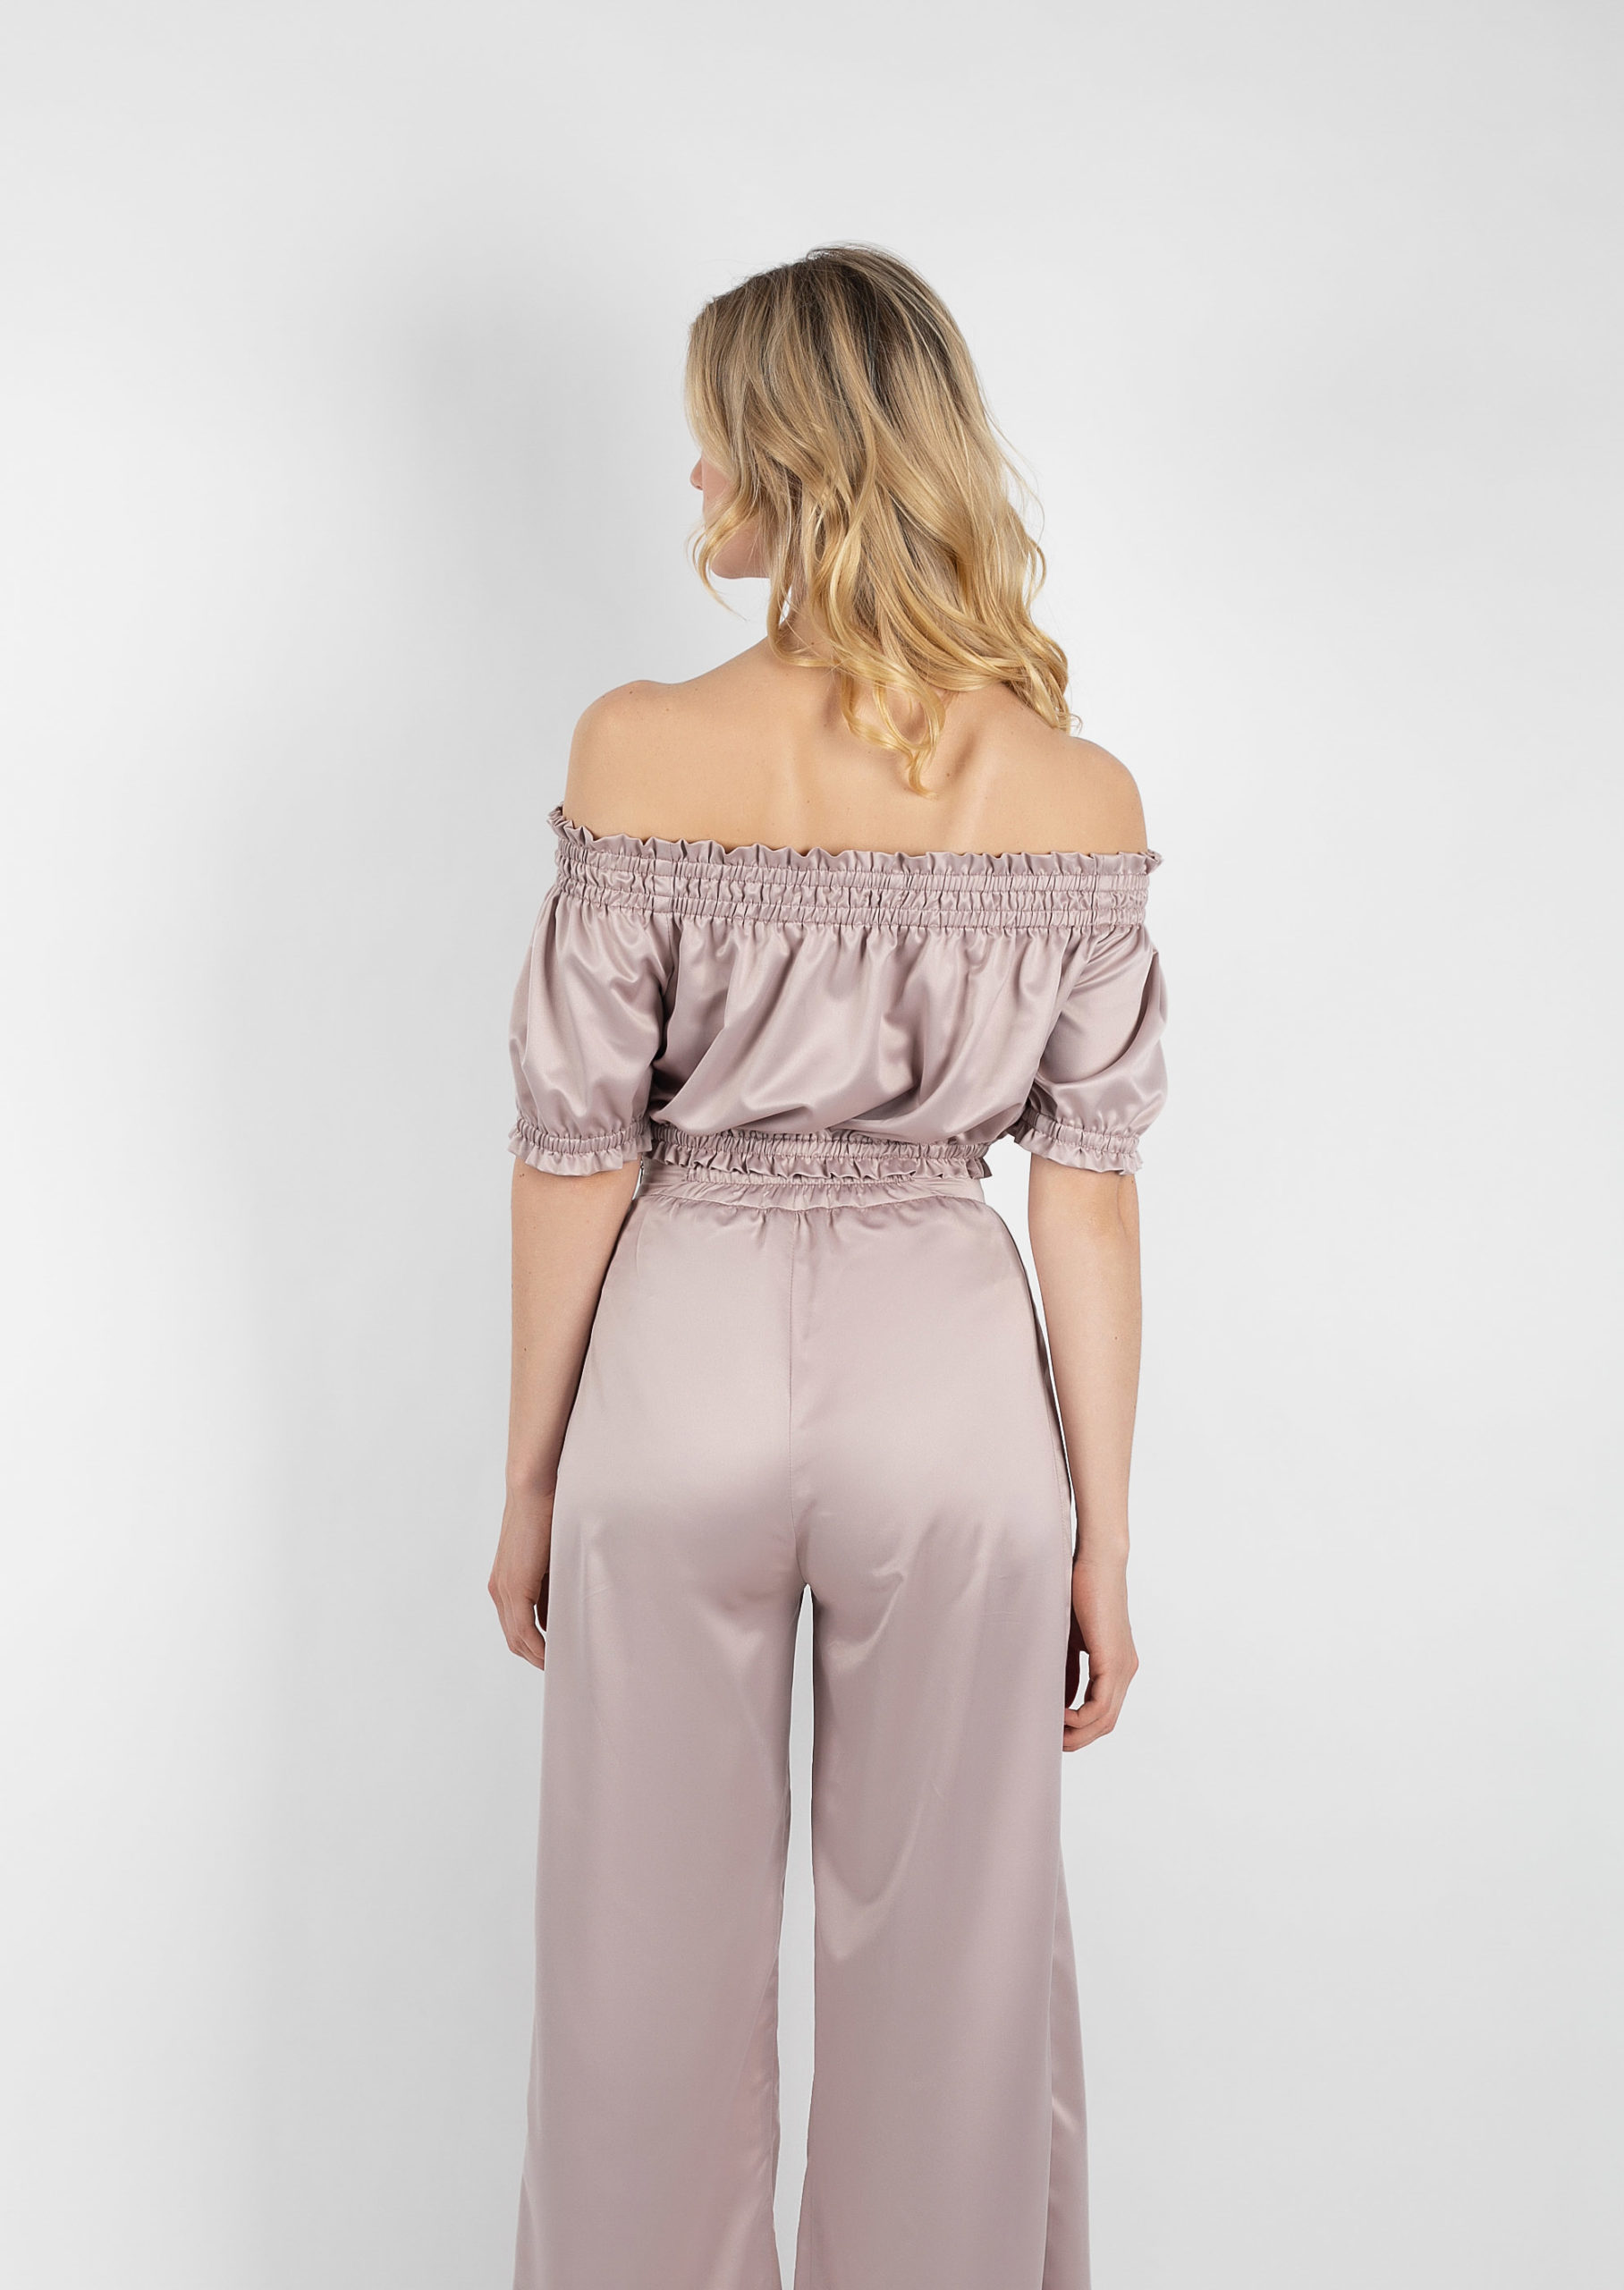 French cream set / beige sexy eveningwear with pants with deep slits / brown satin cappuchino evening set / off-the-shoulder evening wear